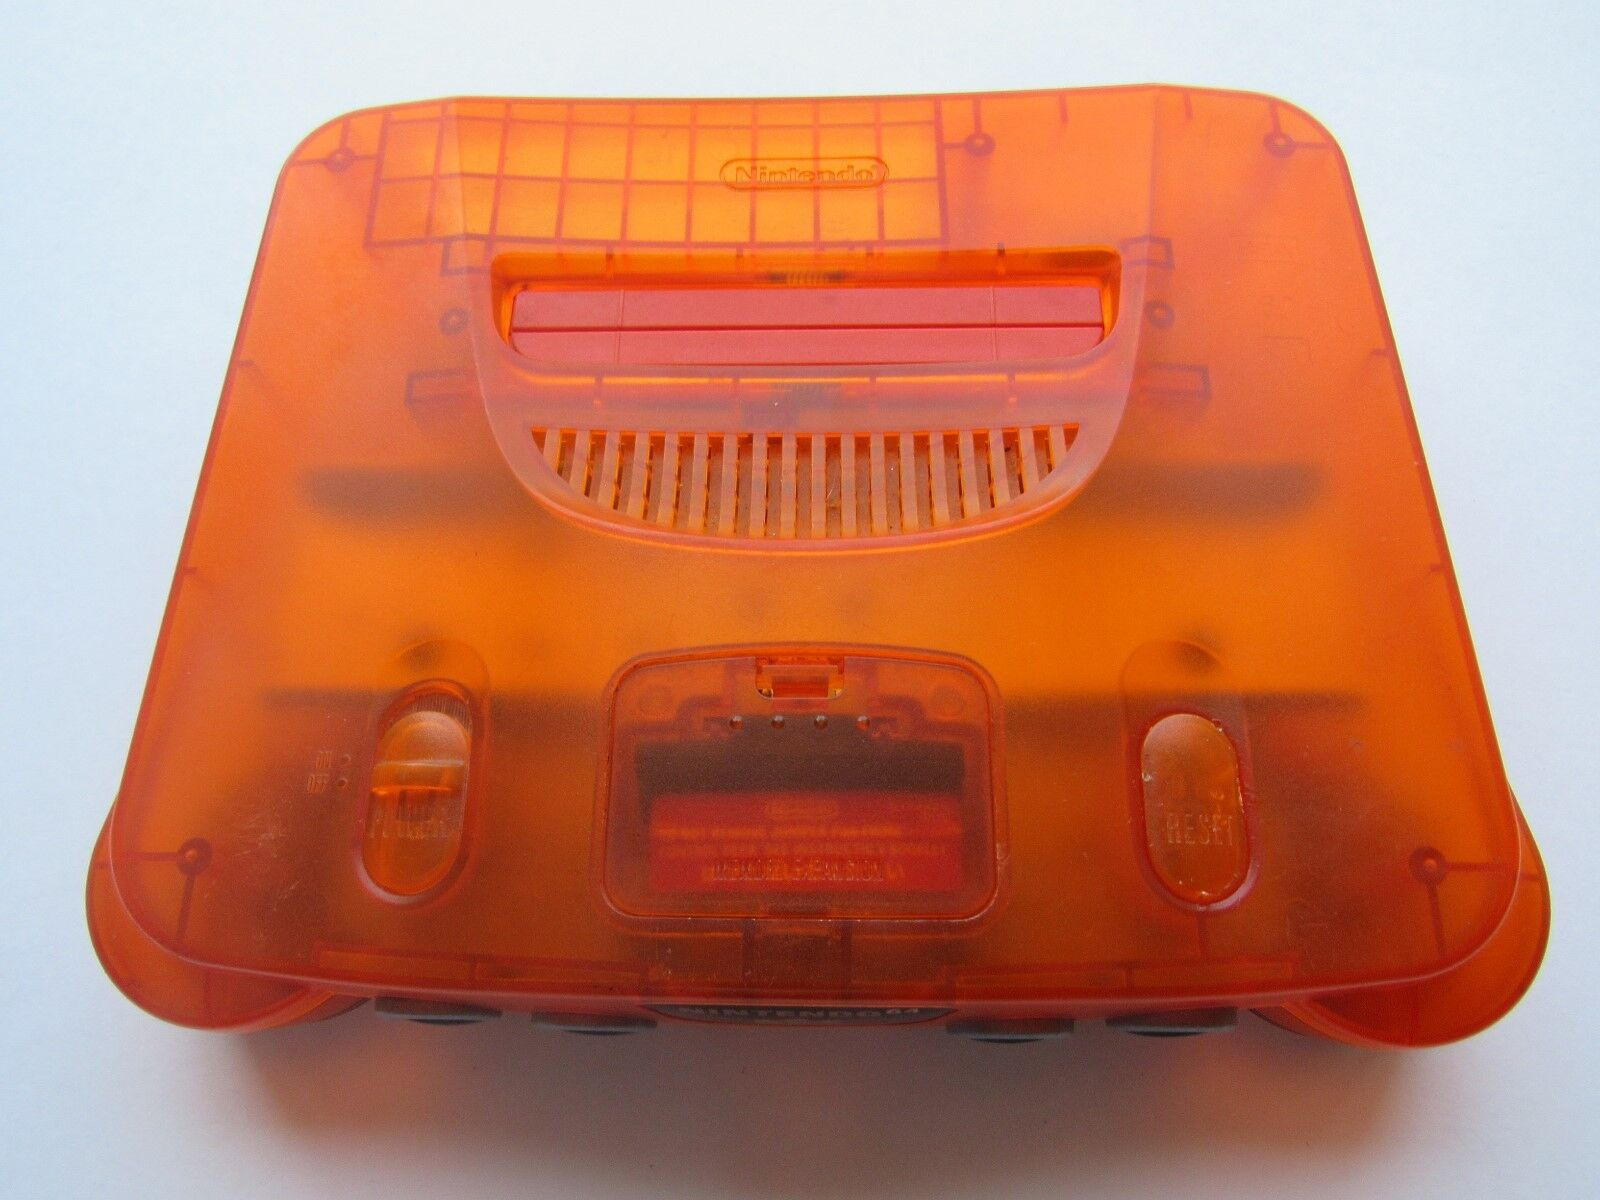 *GOOD* Nintendo 64 N64 OEM Video Game Console System Funtastic Pokemon Gold Rare Fire Orange *Console & Jumper Pack*